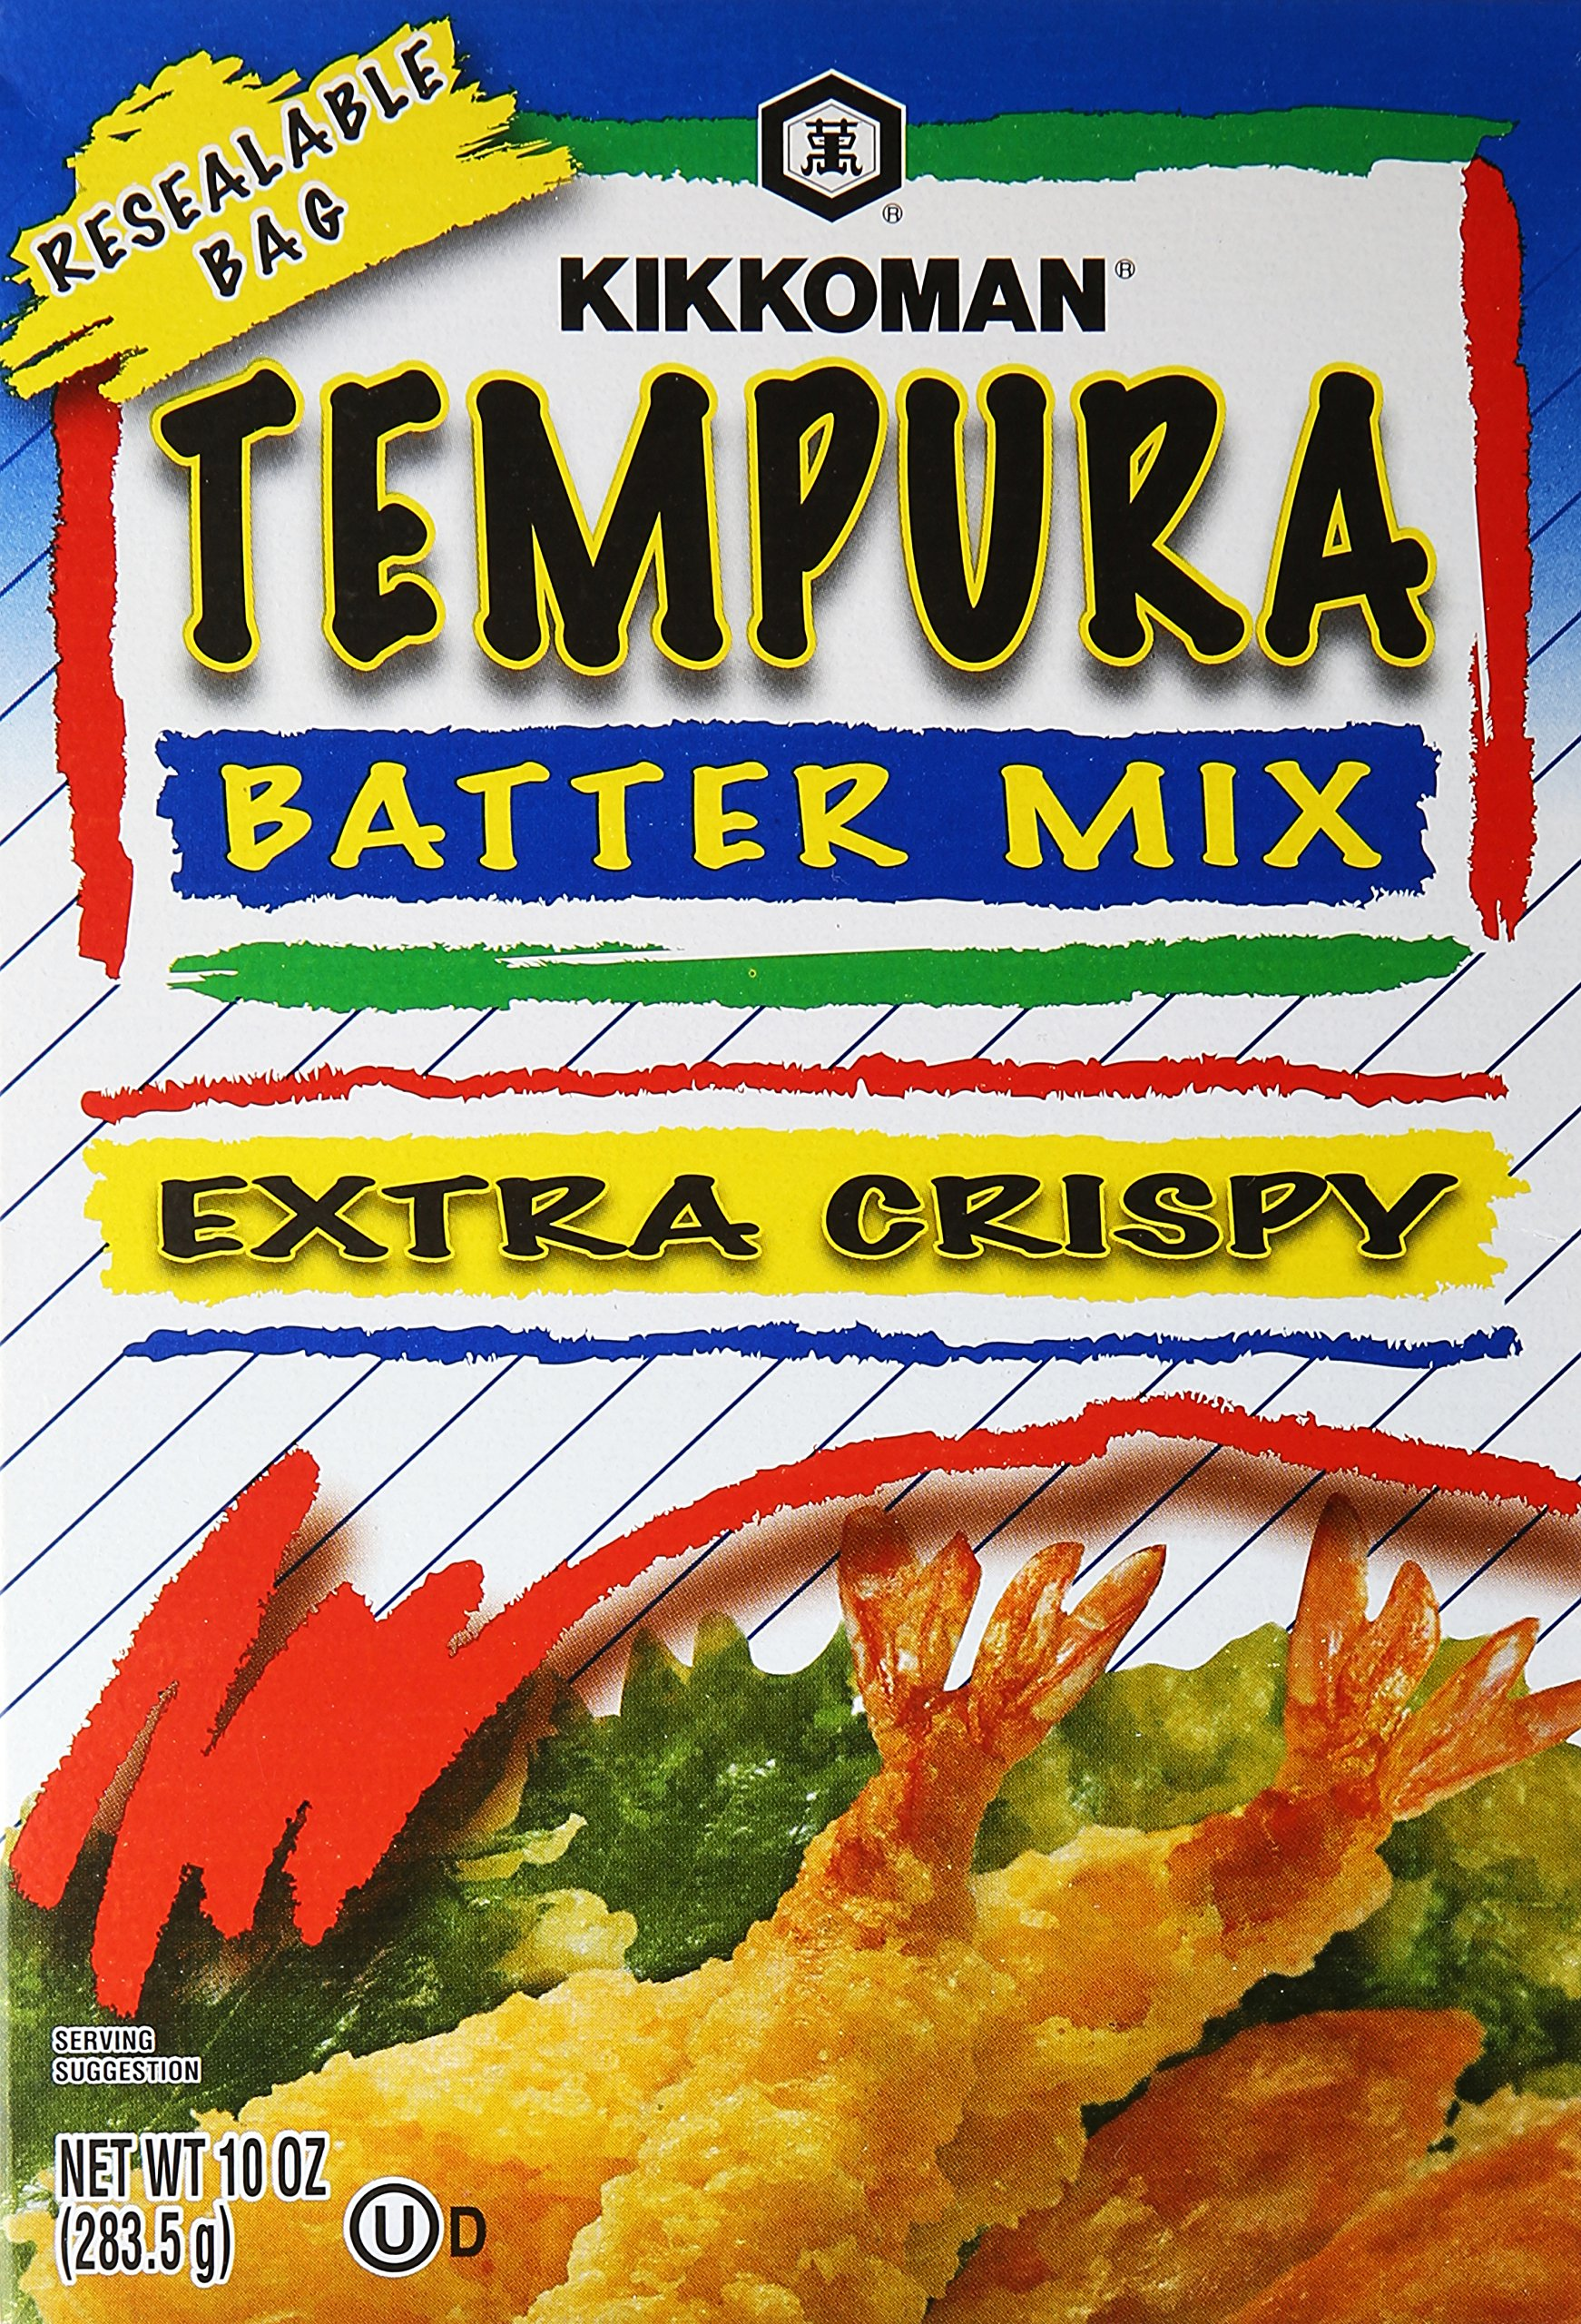 Kikkoman Mix Tempura Batter by Kikkoman